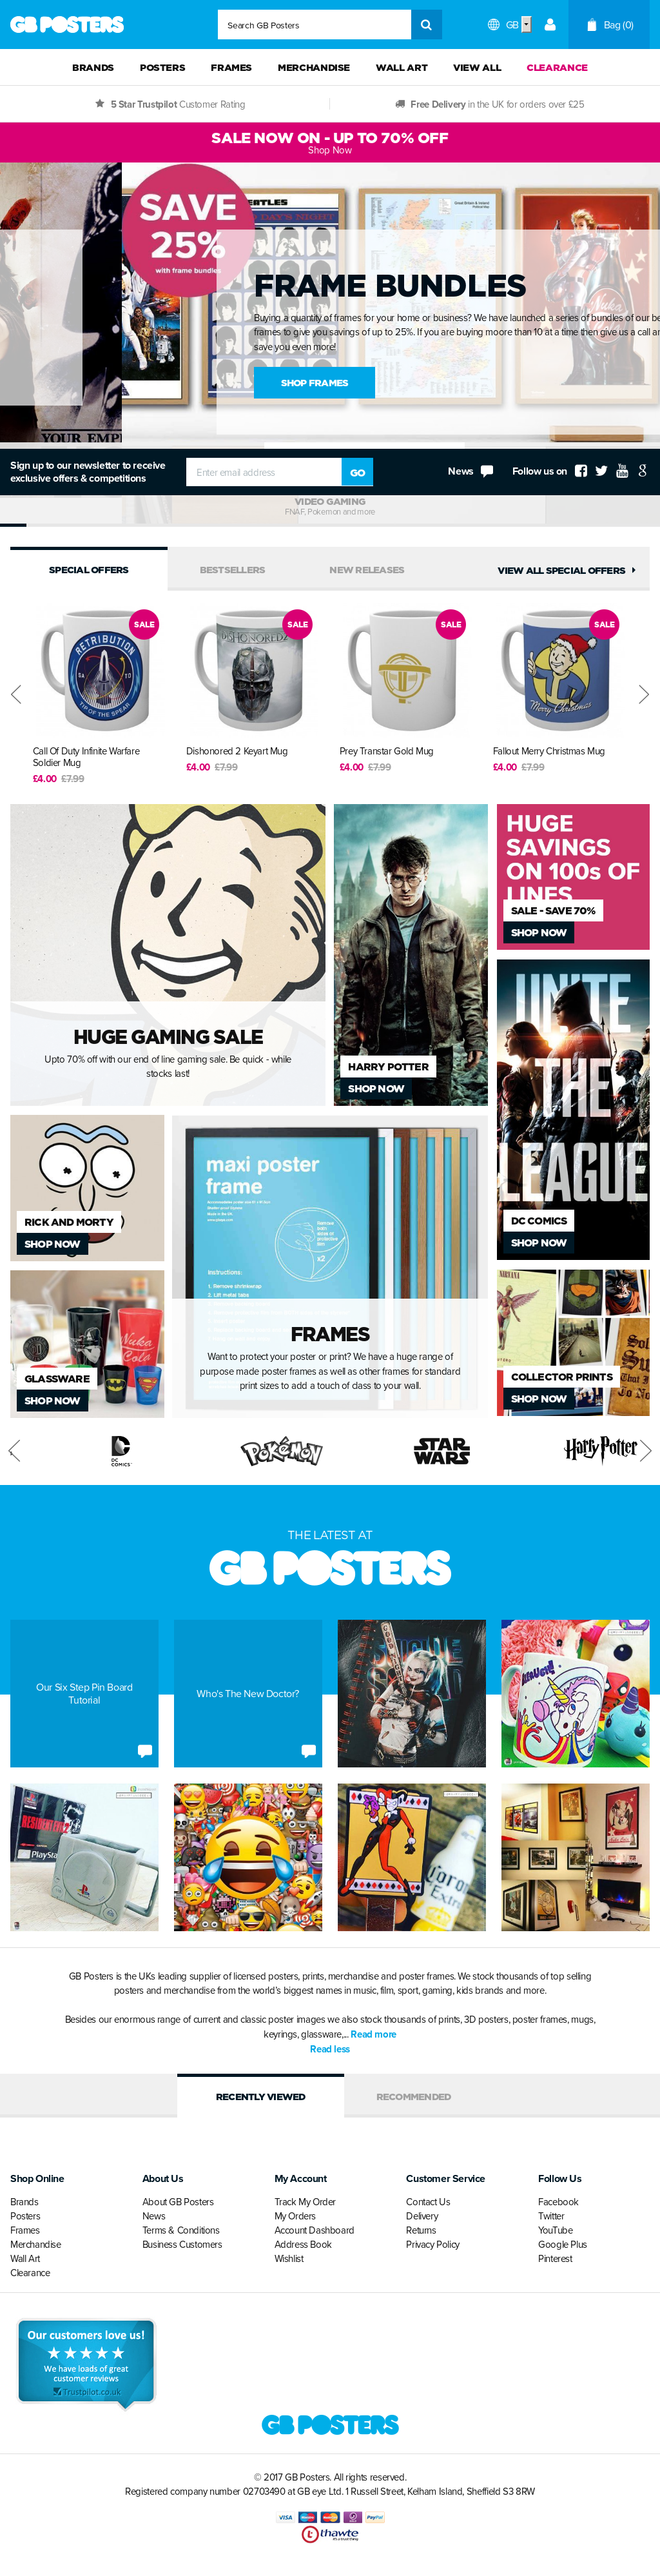 gb posters competitors revenue and employees owler company profile